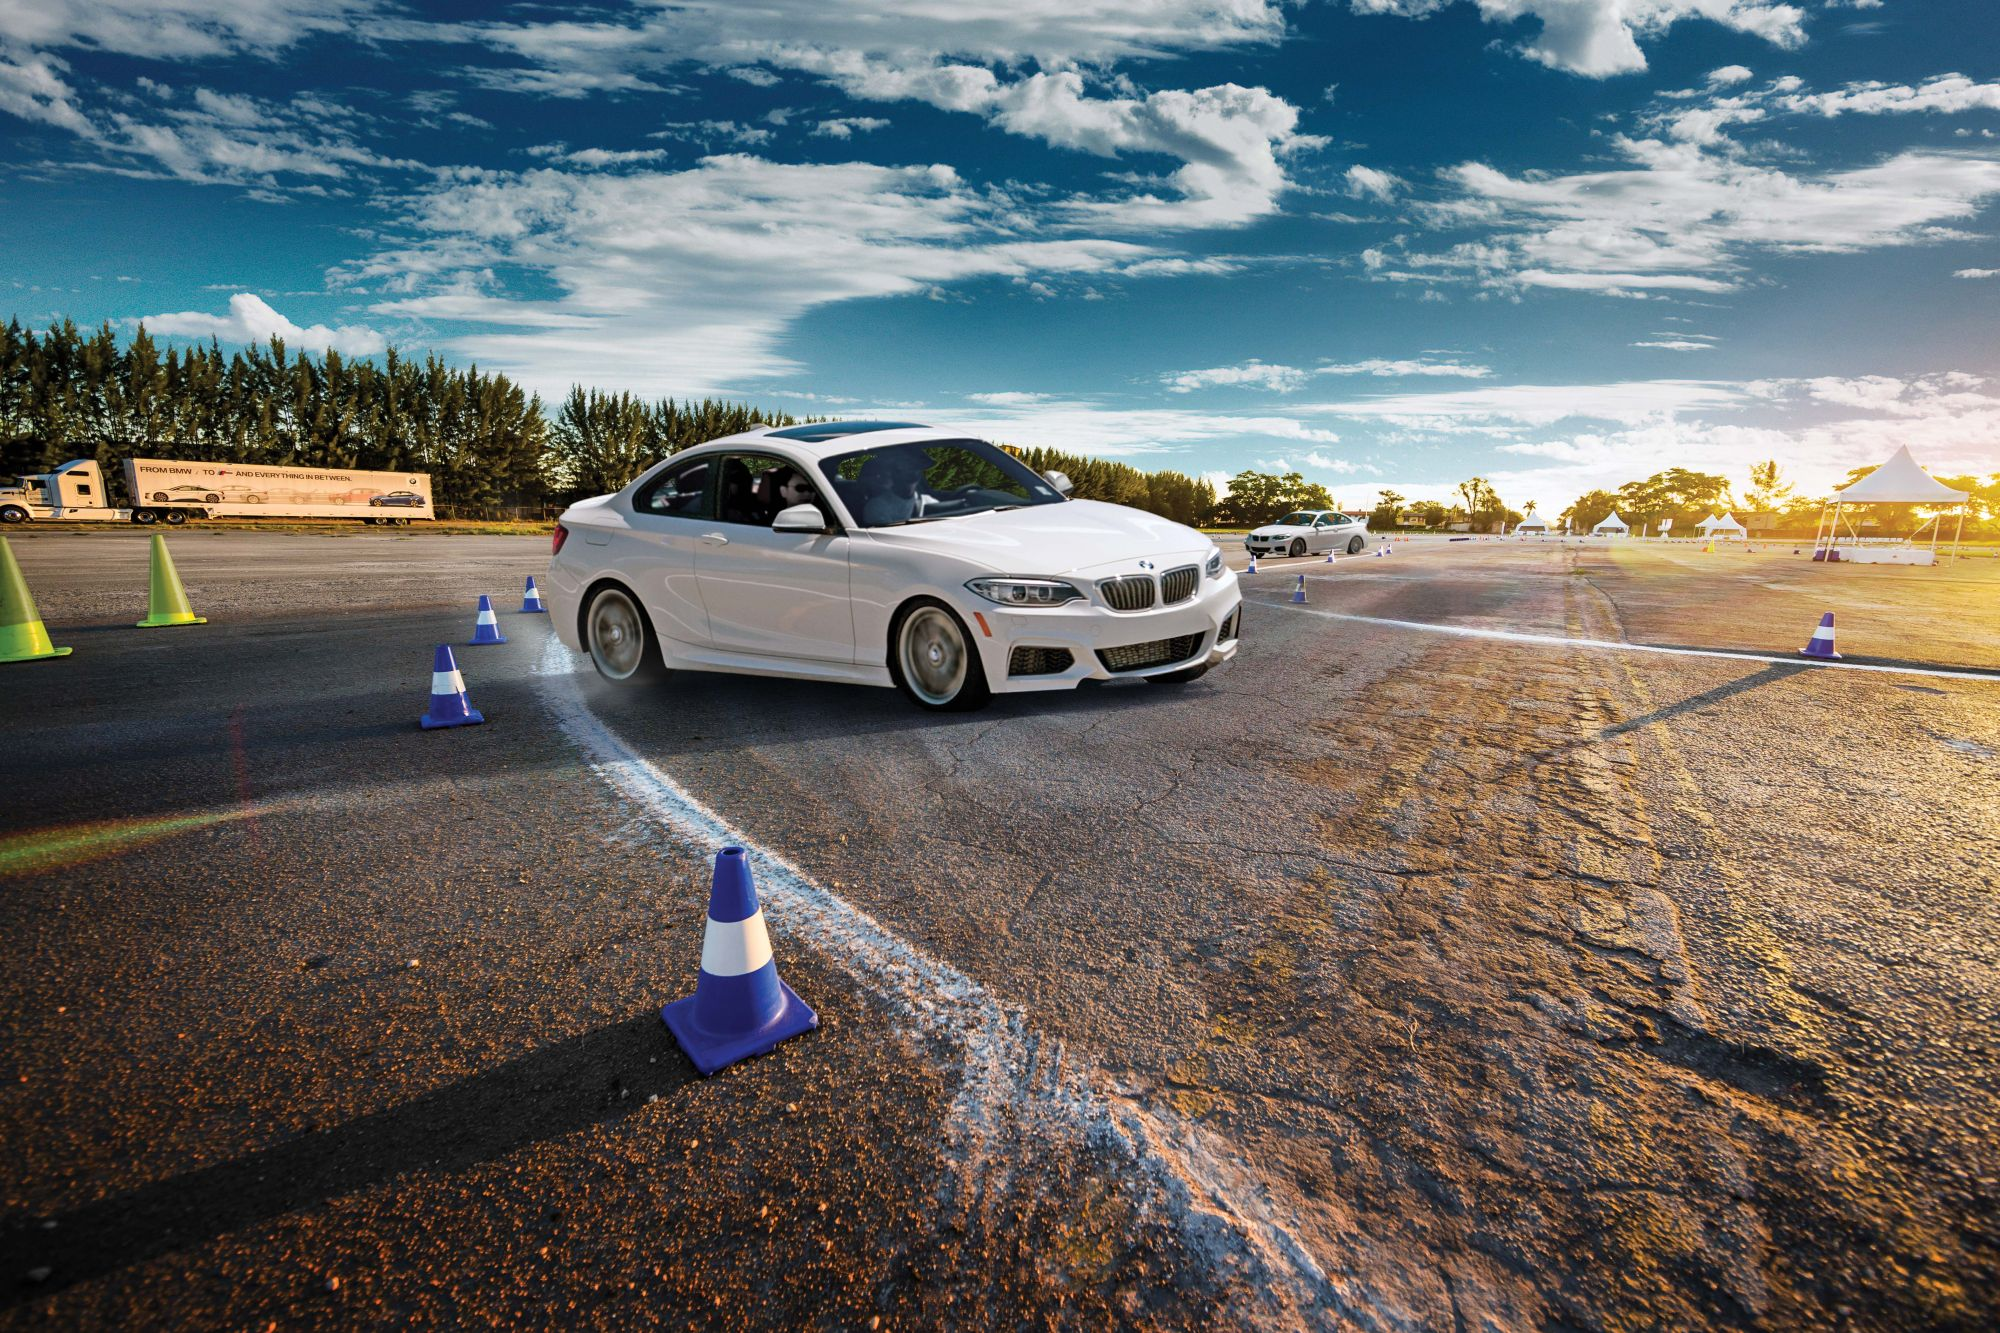 BMW's Ultimate Driving Experience Tour 2015